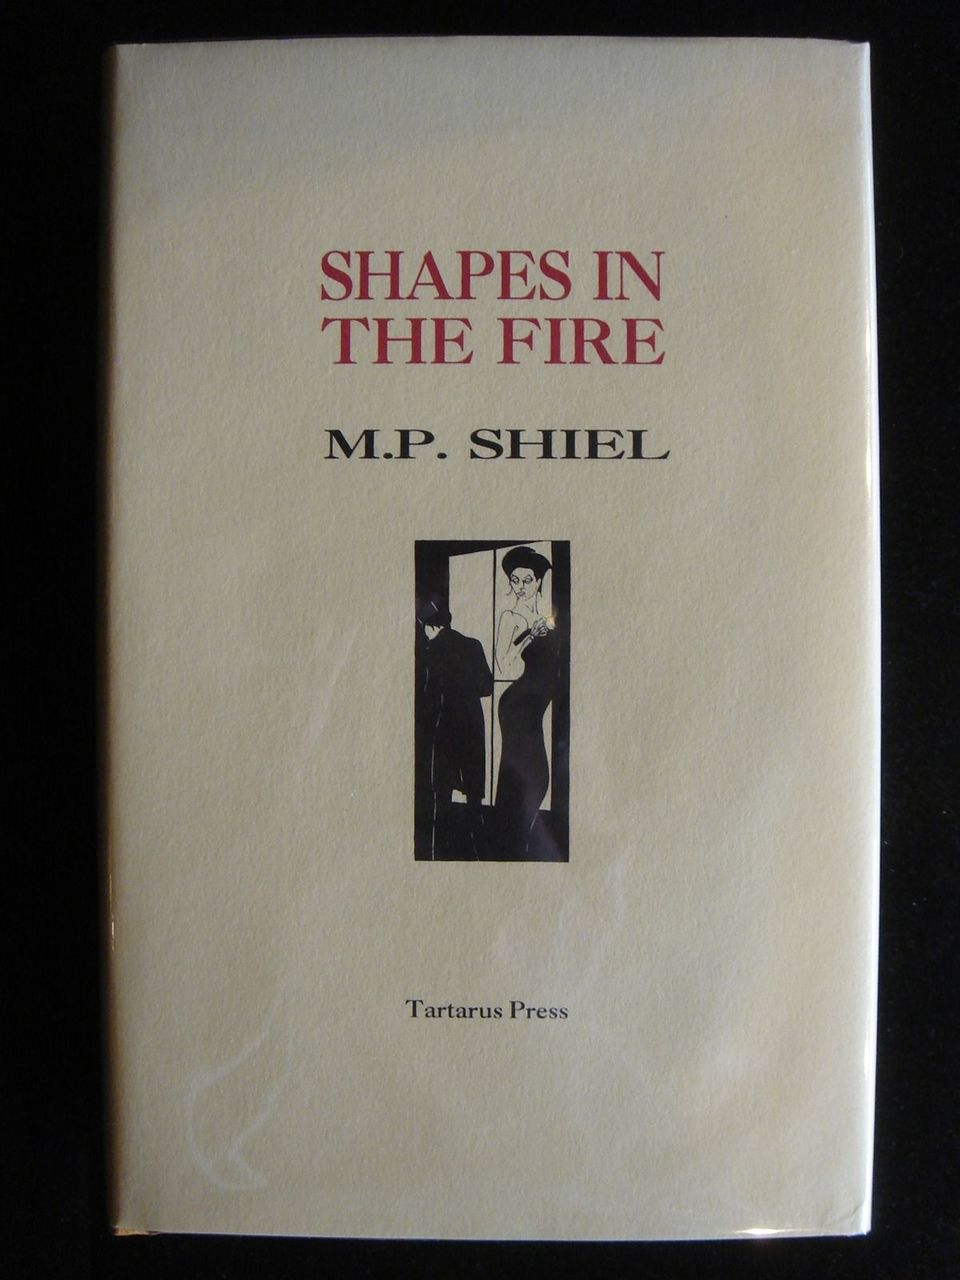 SHAPES IN THE FIRE, by M.P. Shiel - 2000